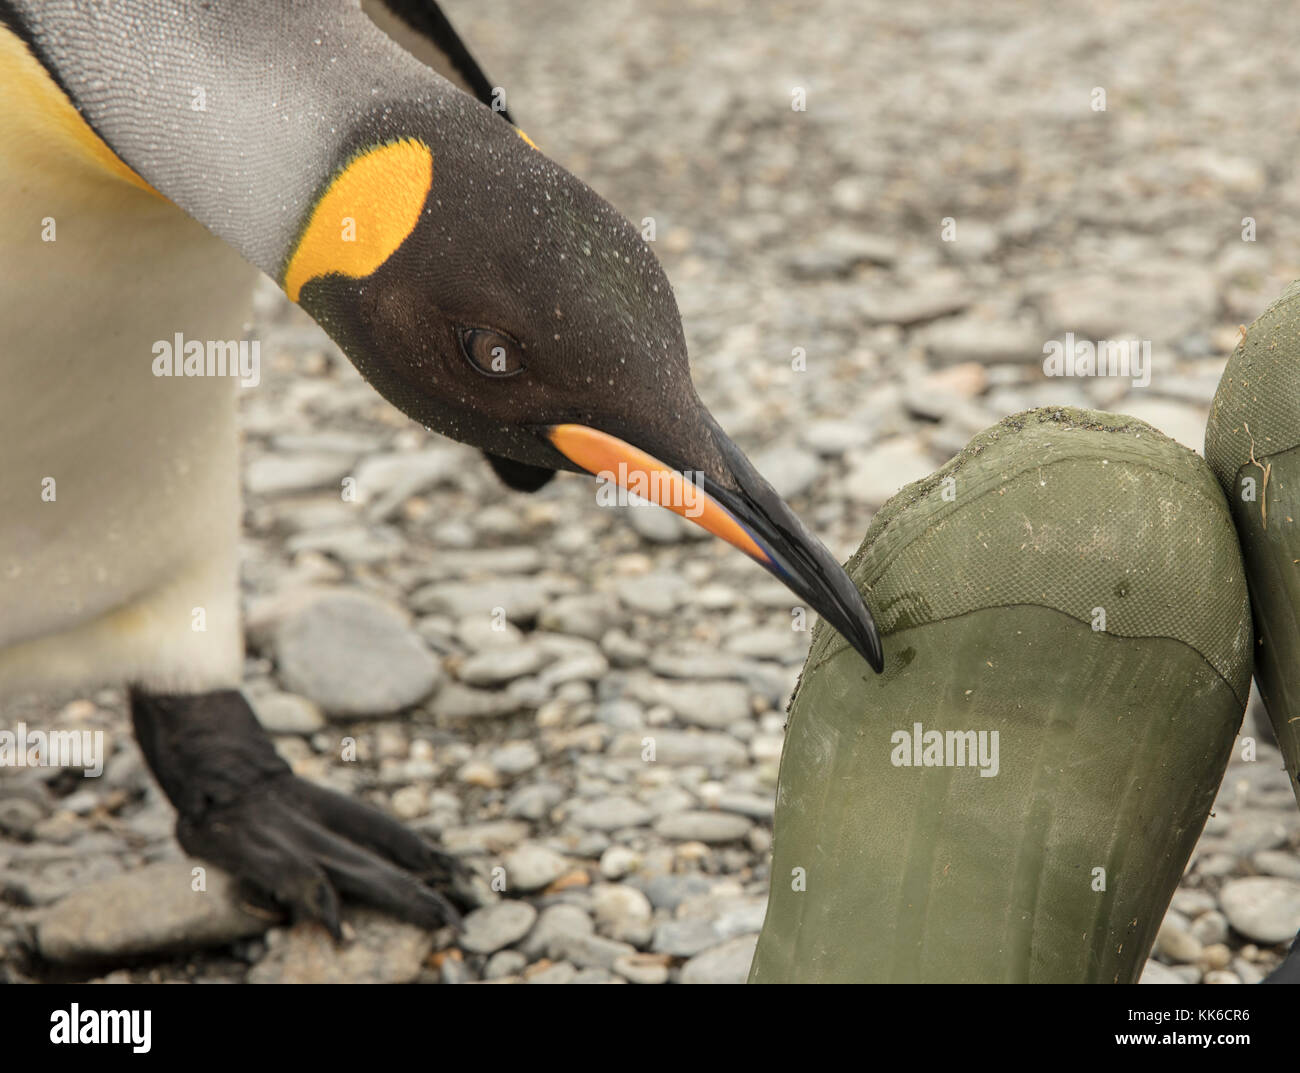 Curious king penguin checks out an ecotourist's rubber boot at St Andrew's Bay, South Georgia Island - Stock Image